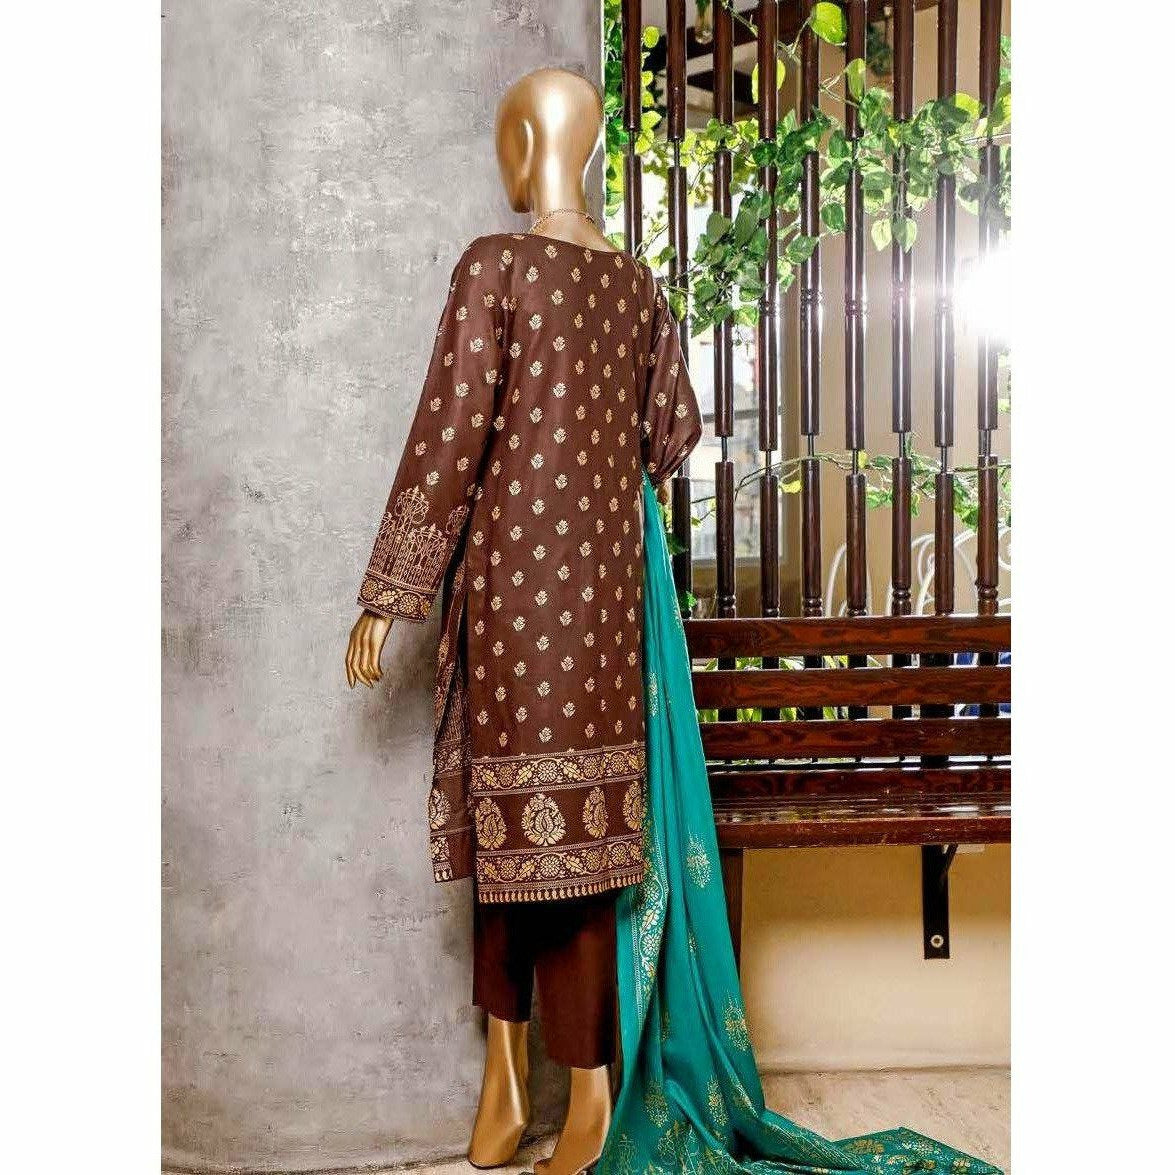 Banarsi By MJ Textiles Cambric 20 - Design 106B